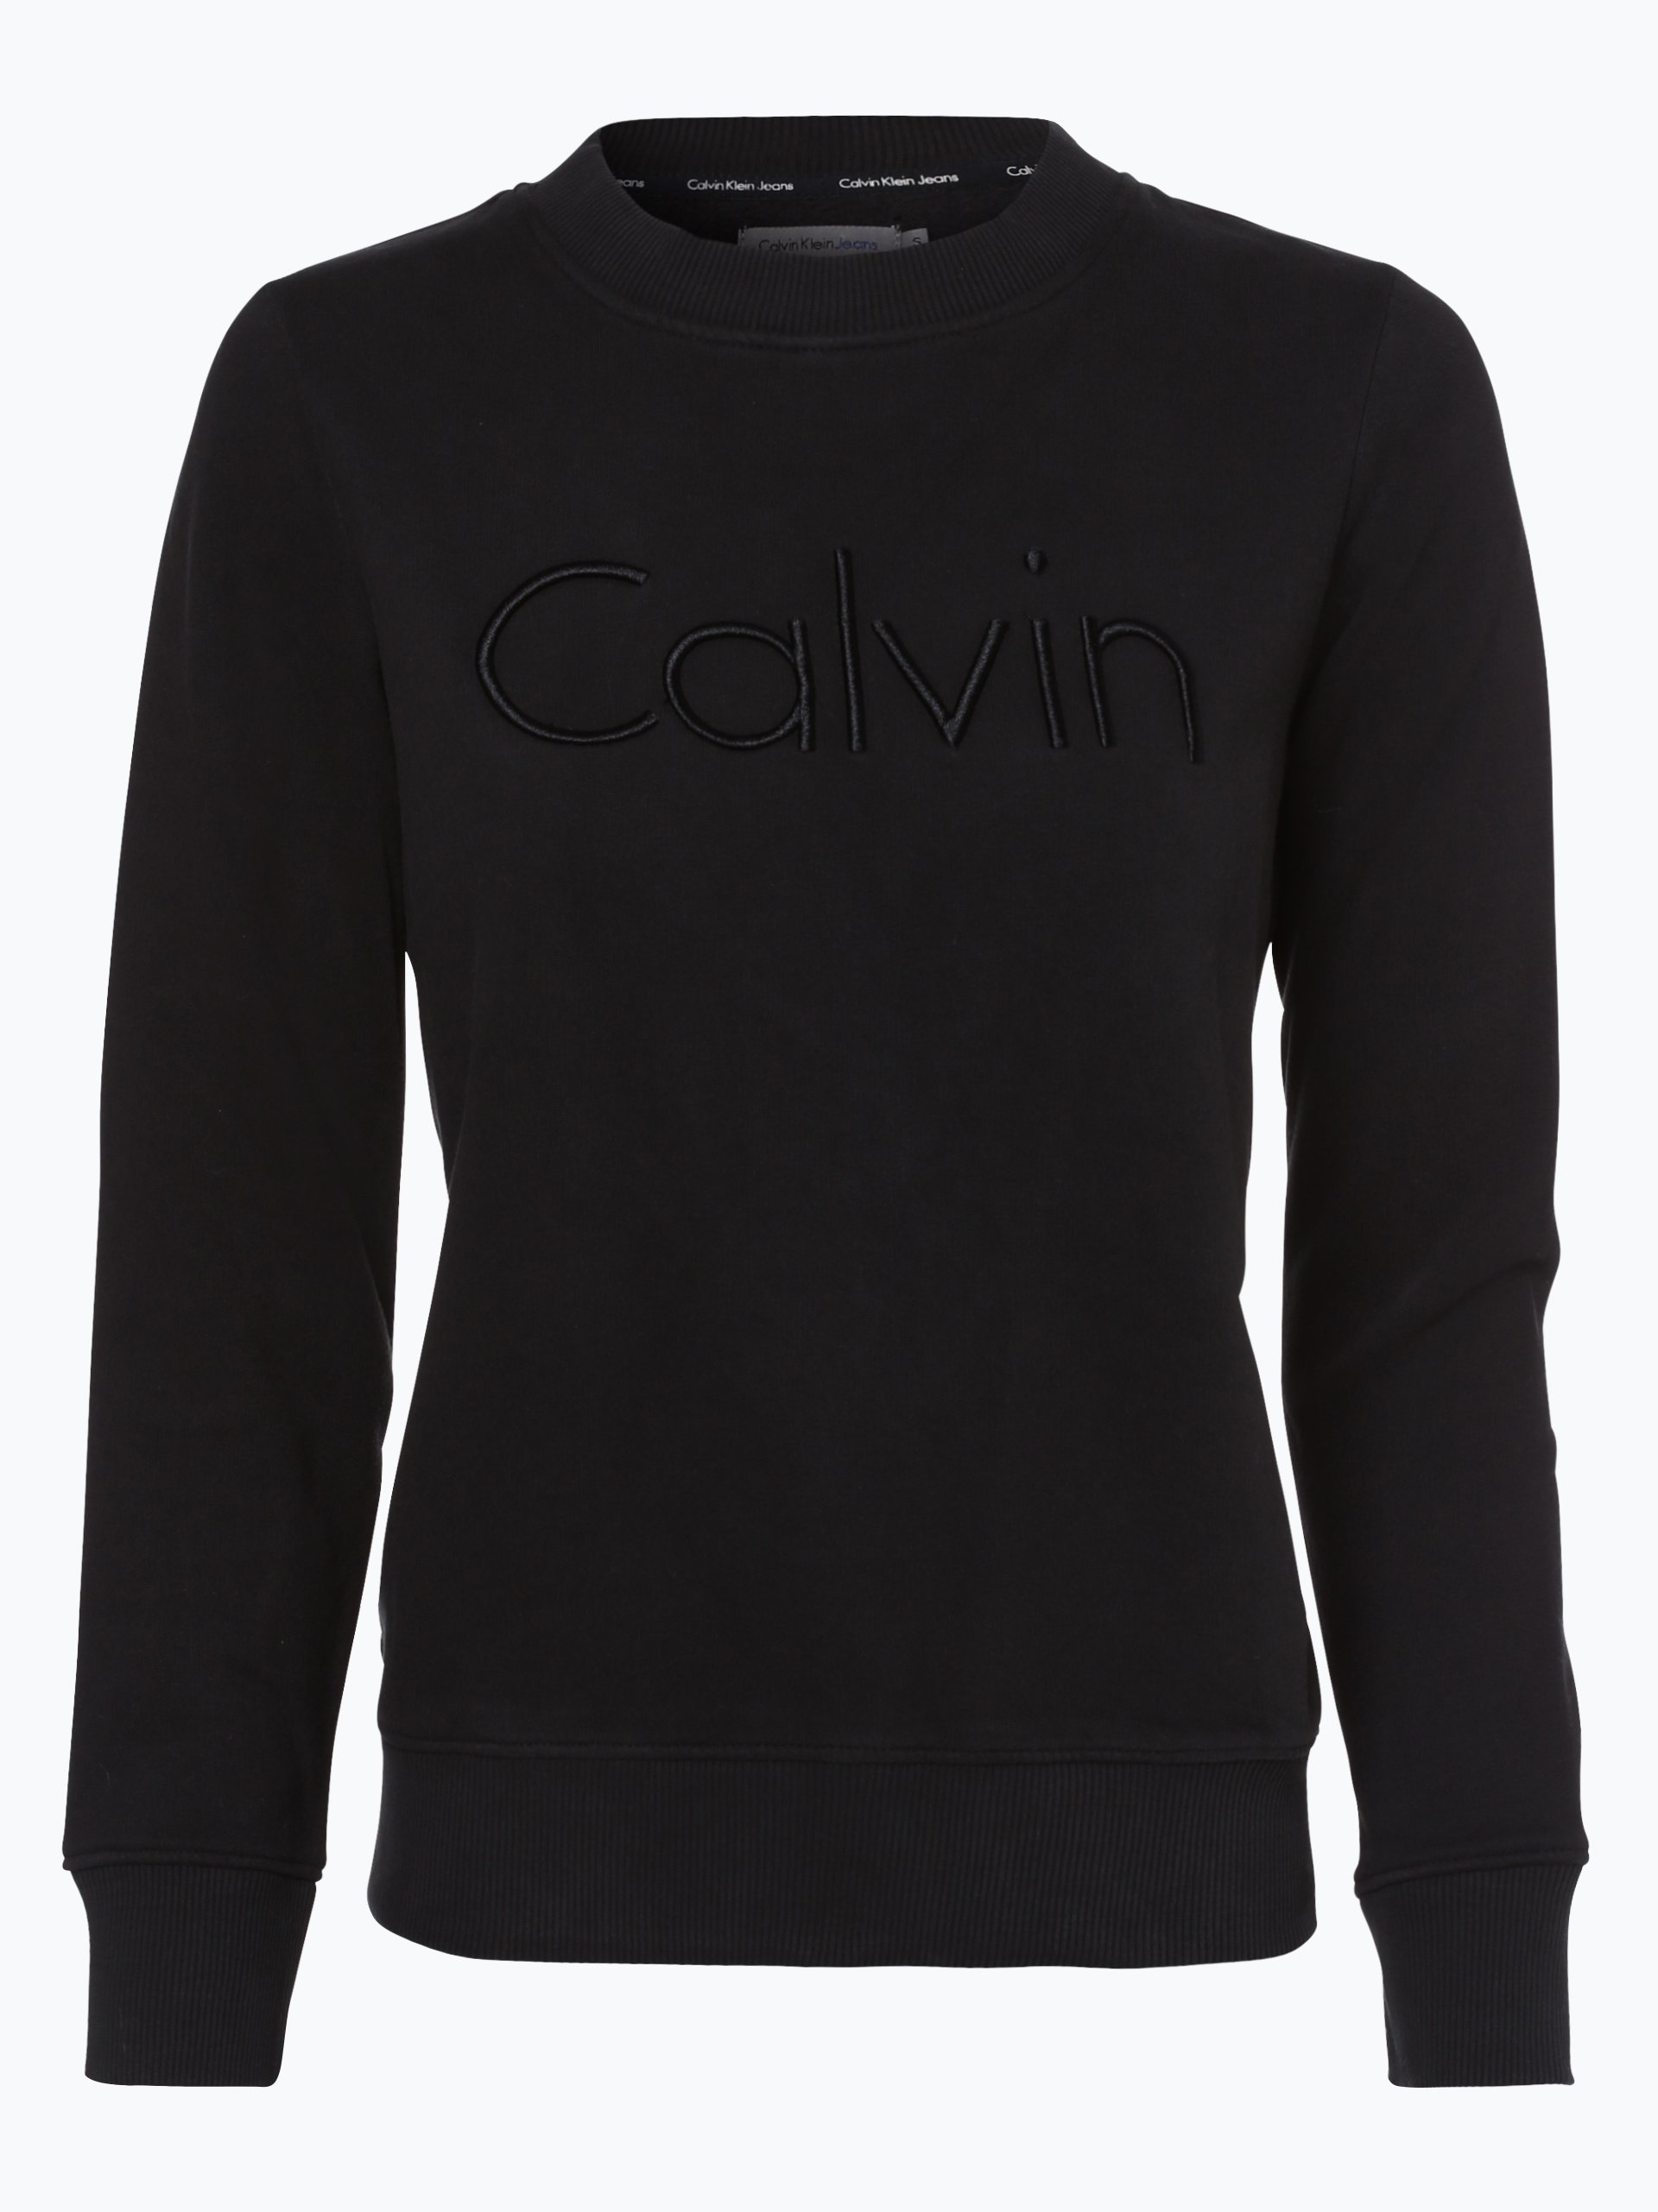 calvin klein jeans damen sweatshirt schwarz uni online. Black Bedroom Furniture Sets. Home Design Ideas